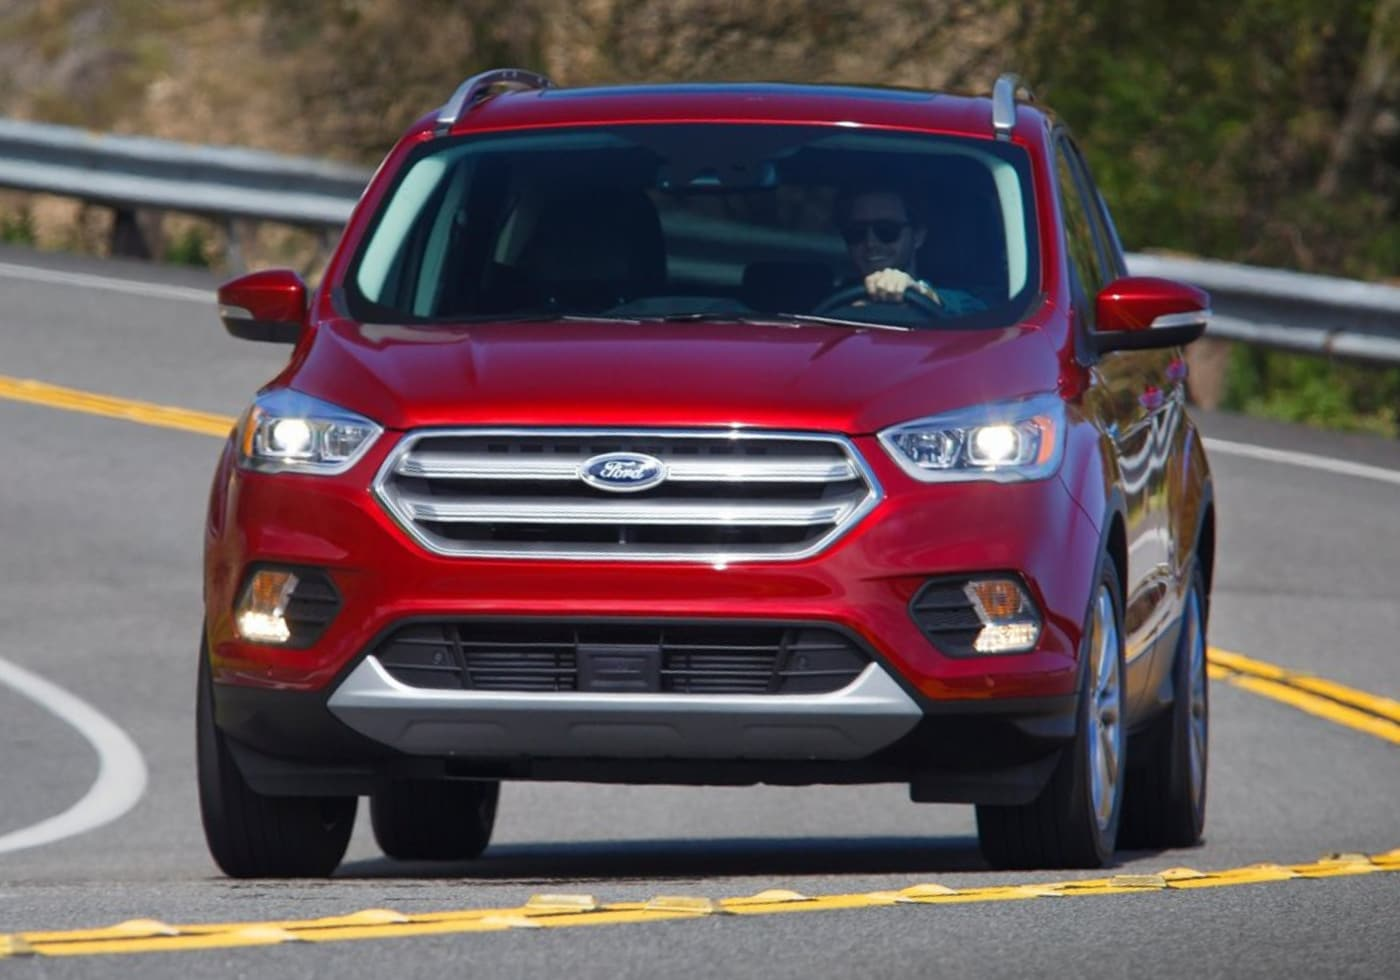 Used 2017 Ford Escape as it drives down the truck with the driver cracking a big smile